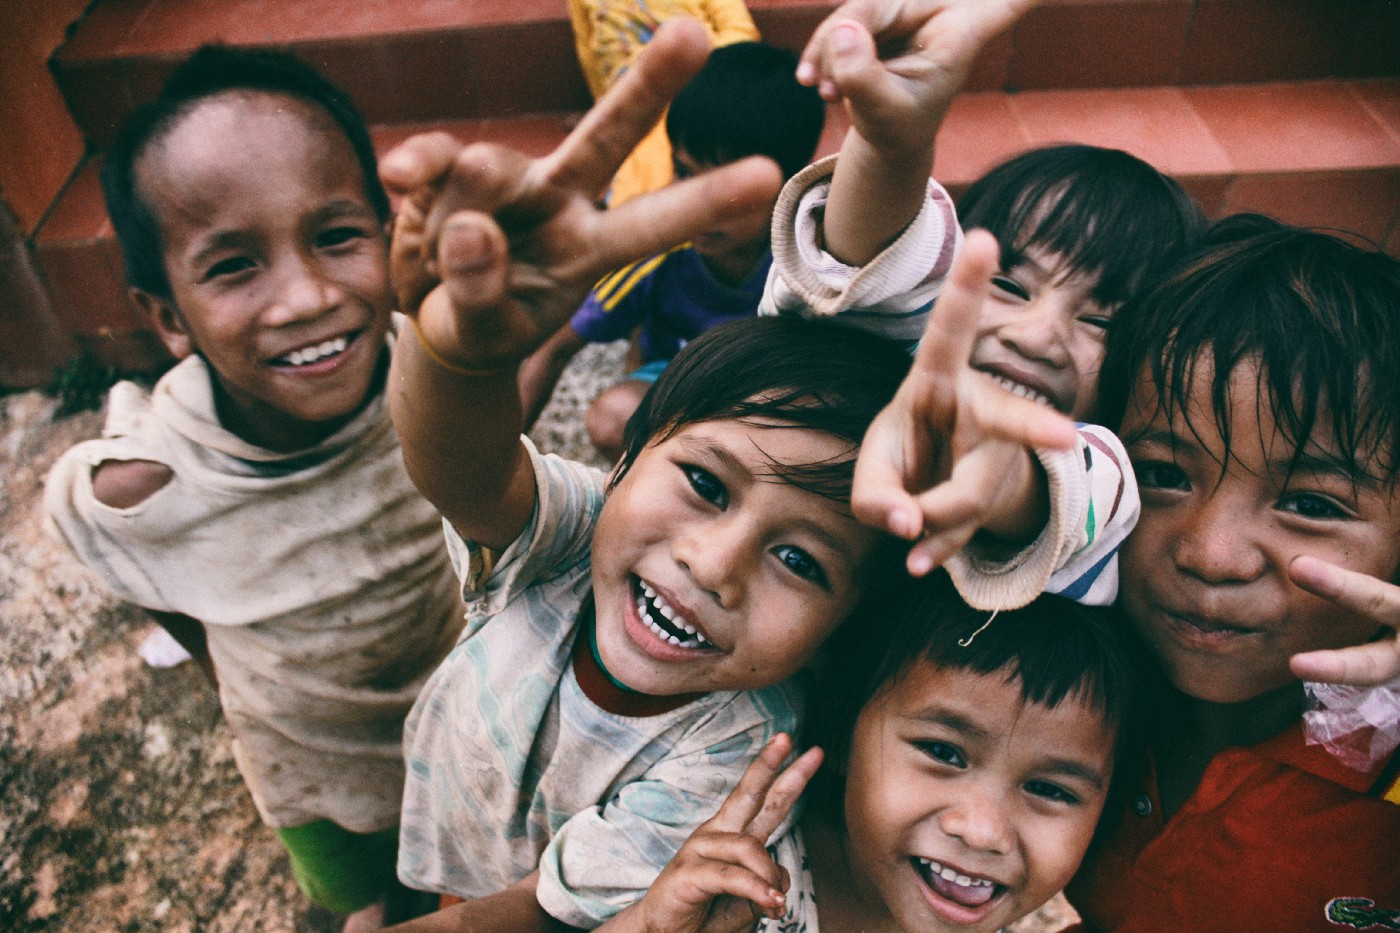 Several small children, dressed in stained and torn clothes, smile gleefully and put up peace signs.